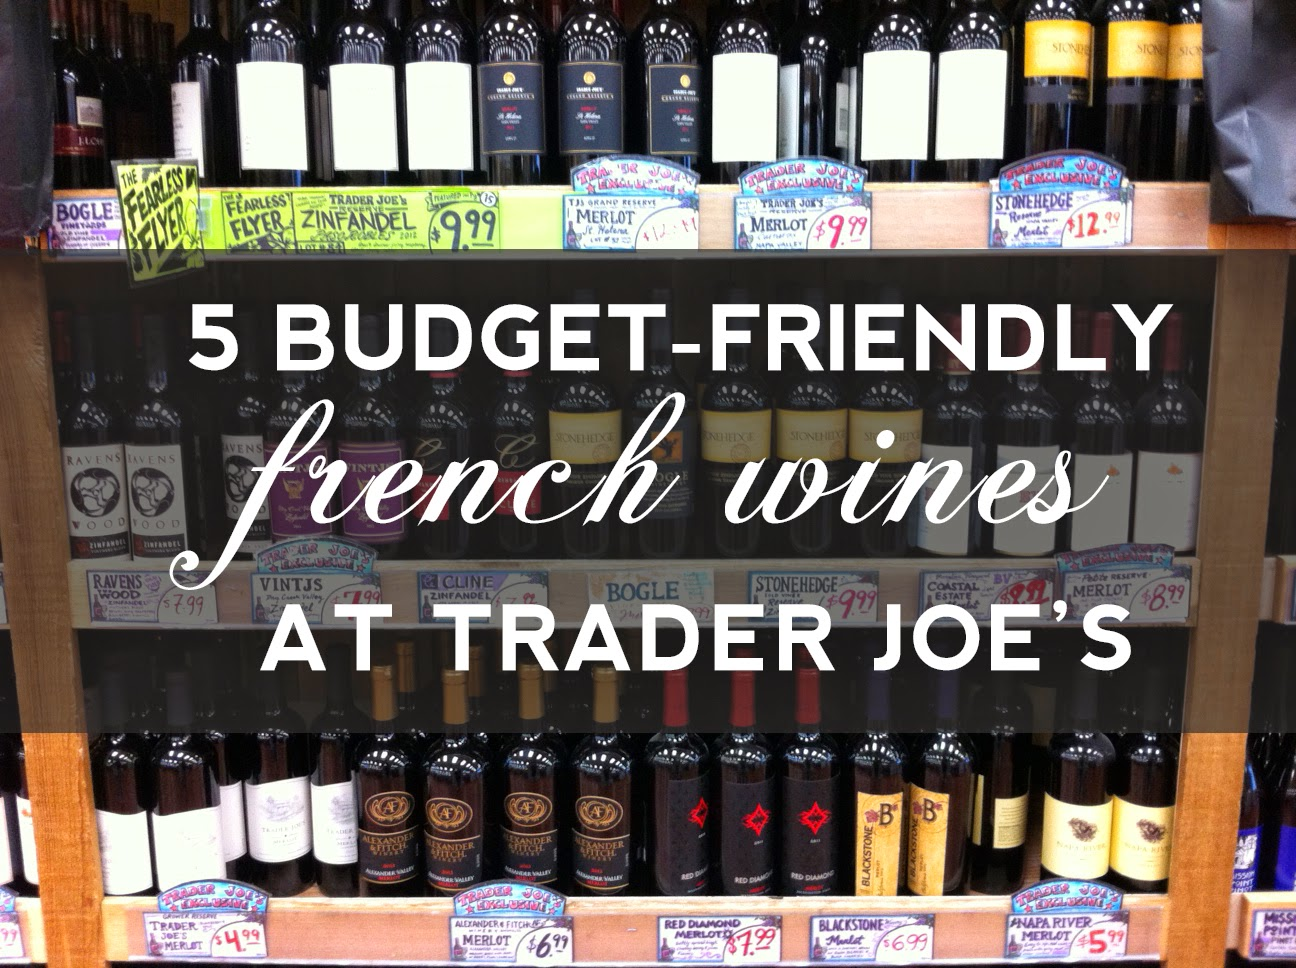 Five Budget Friendly French Wines at Trader Joe's from Seeds & Thorns Blog